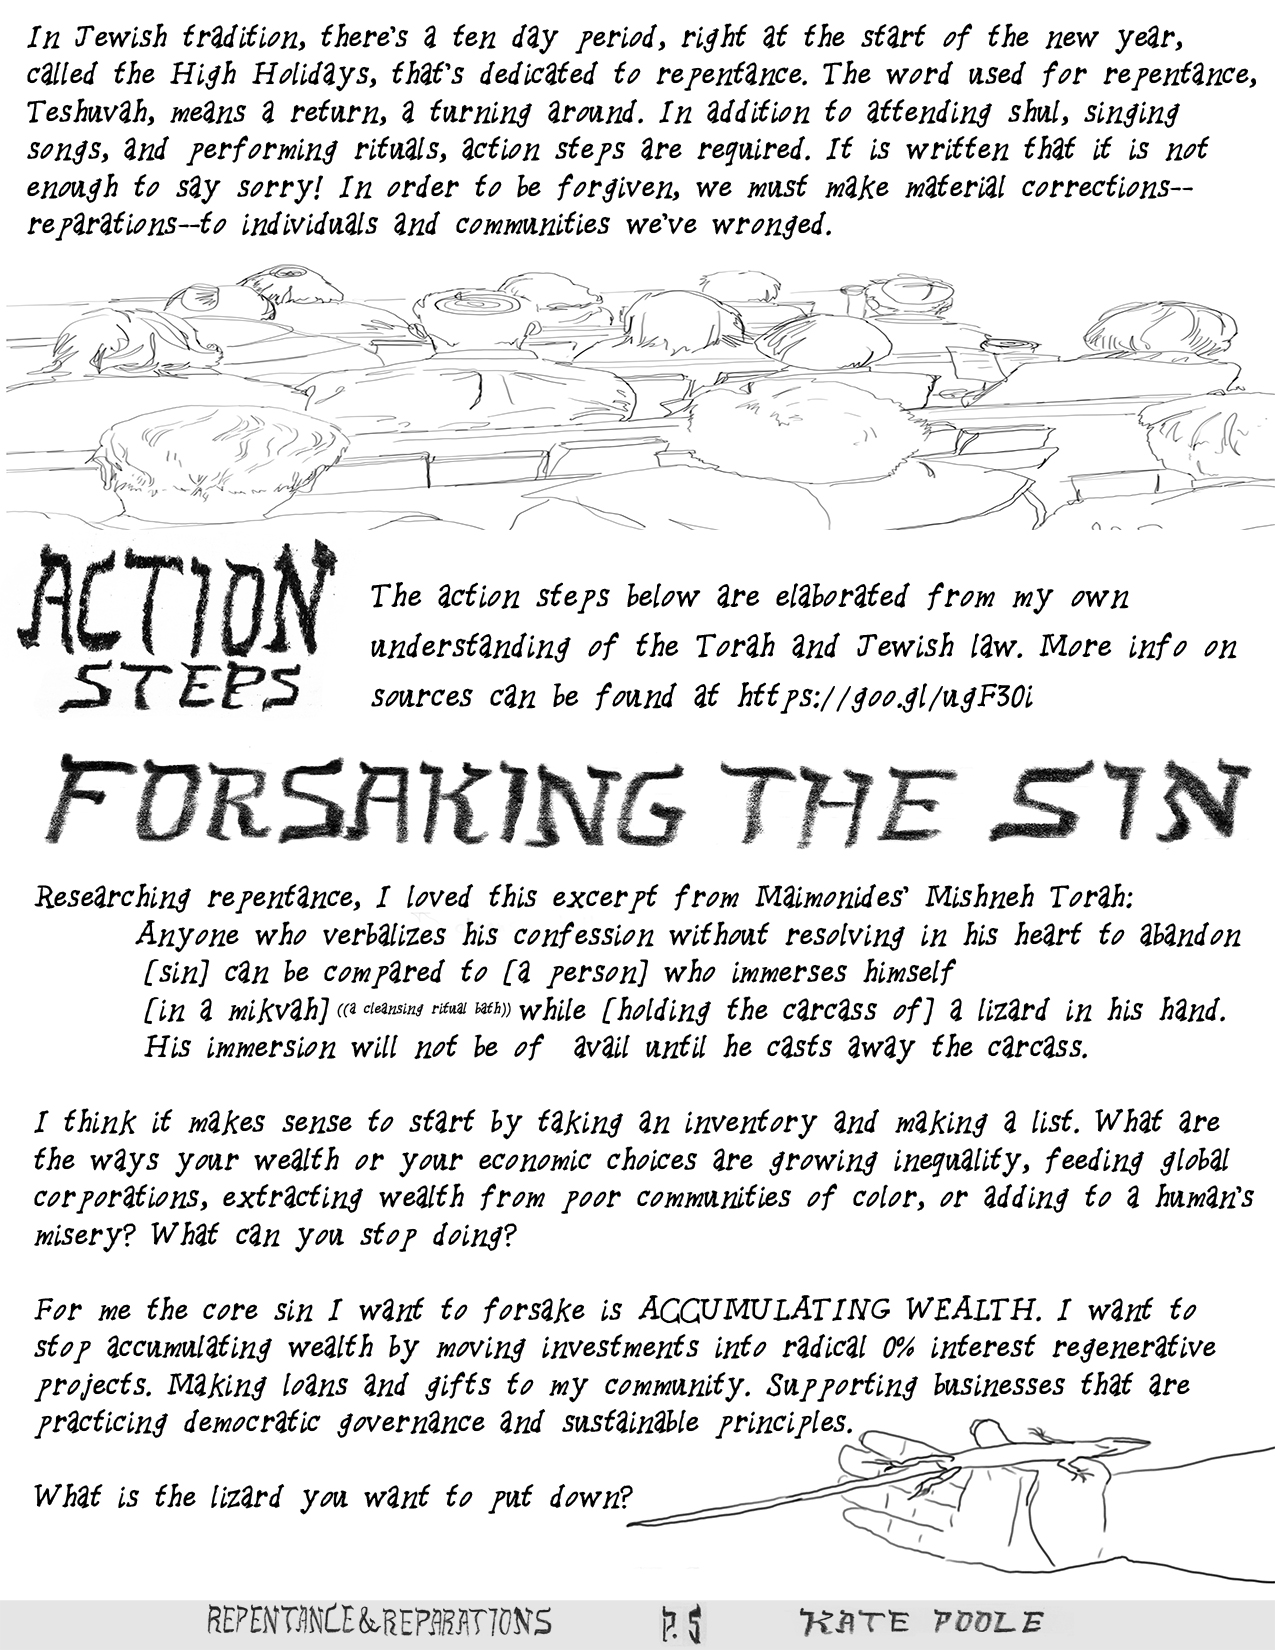 Action steps. First, forsaking the sin.